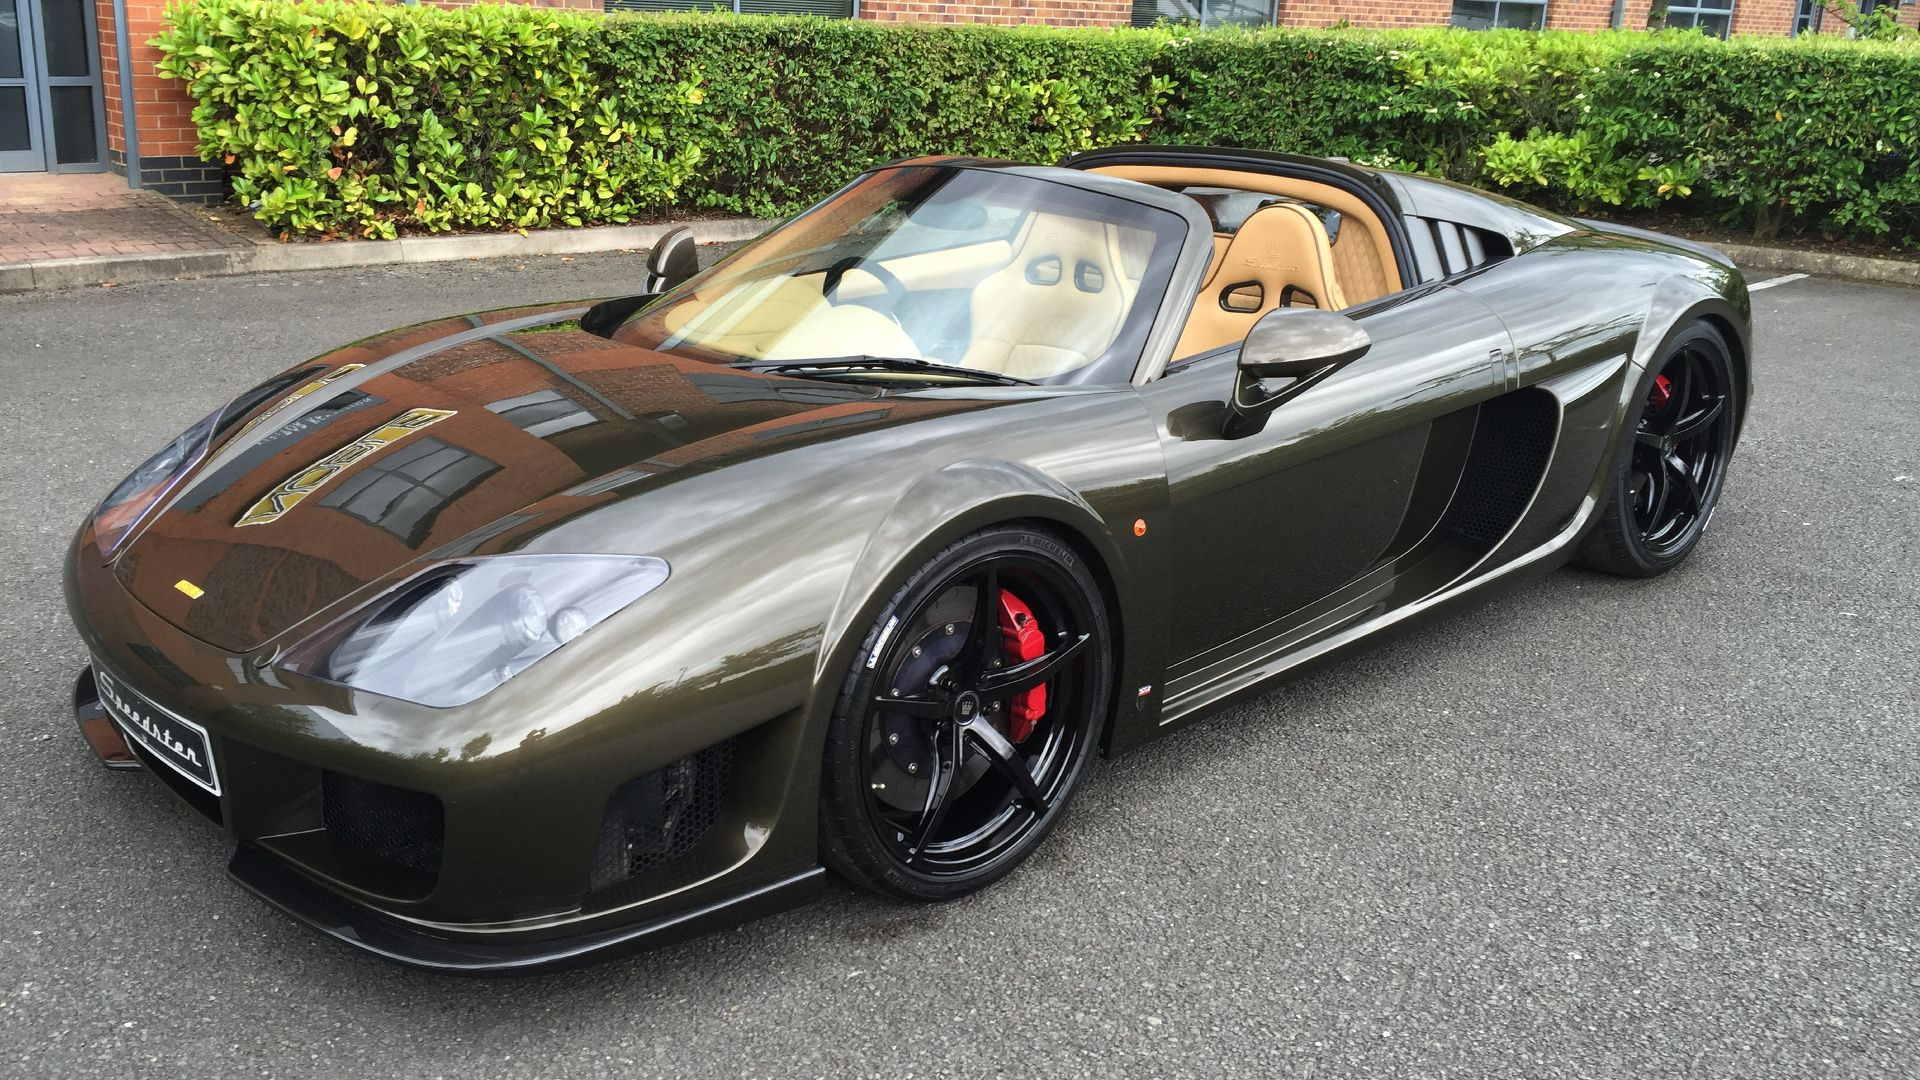 The new Noble M600 Speedster Might Cost £220,000 #noblem600 #thewealthreport http://luxatic.com/the-new-noble-m600-speedster-might-cost-220000/#utm_sguid=122979,d05c6367-19ae-648a-720c-ff487f059a95